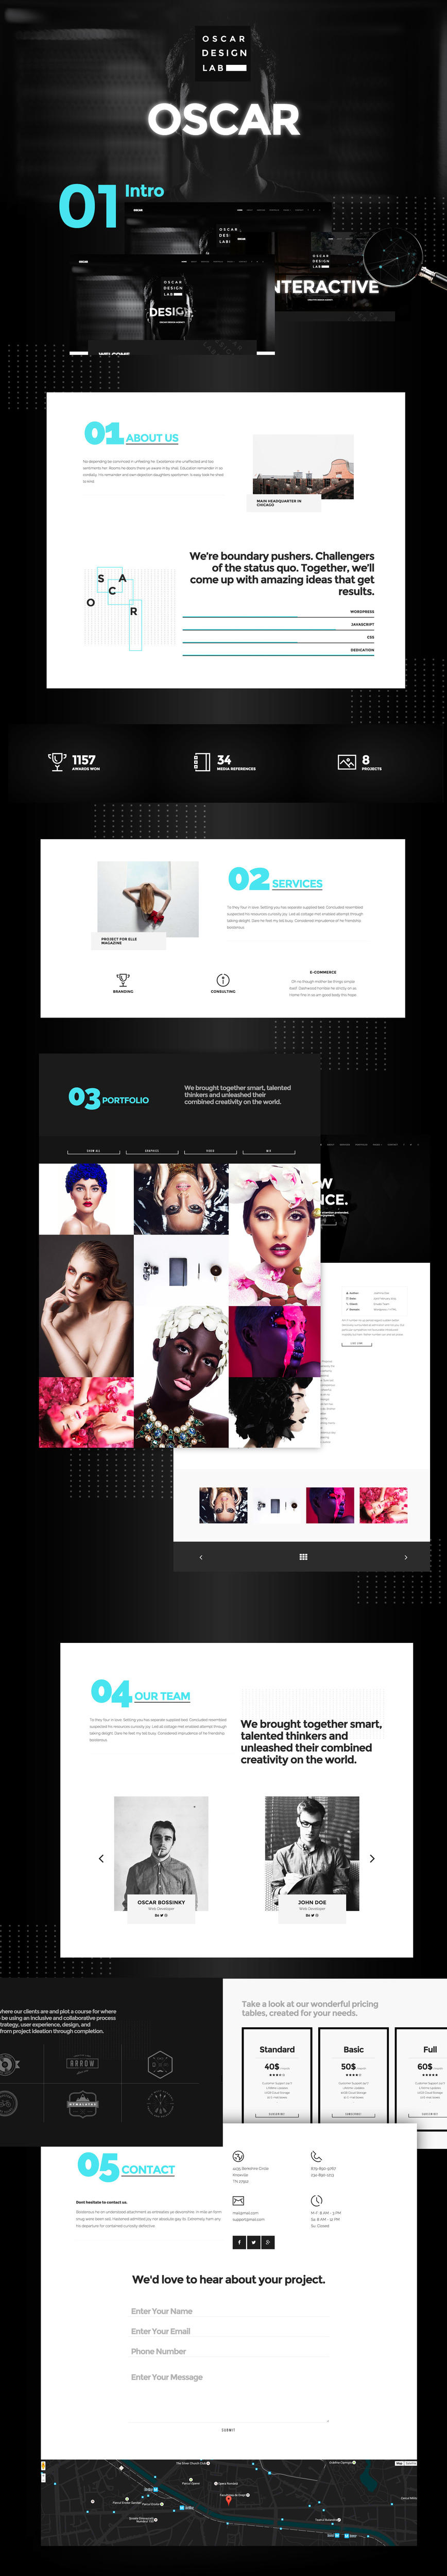 Award-Winning Creative Website Designs by artbreeze - 89567